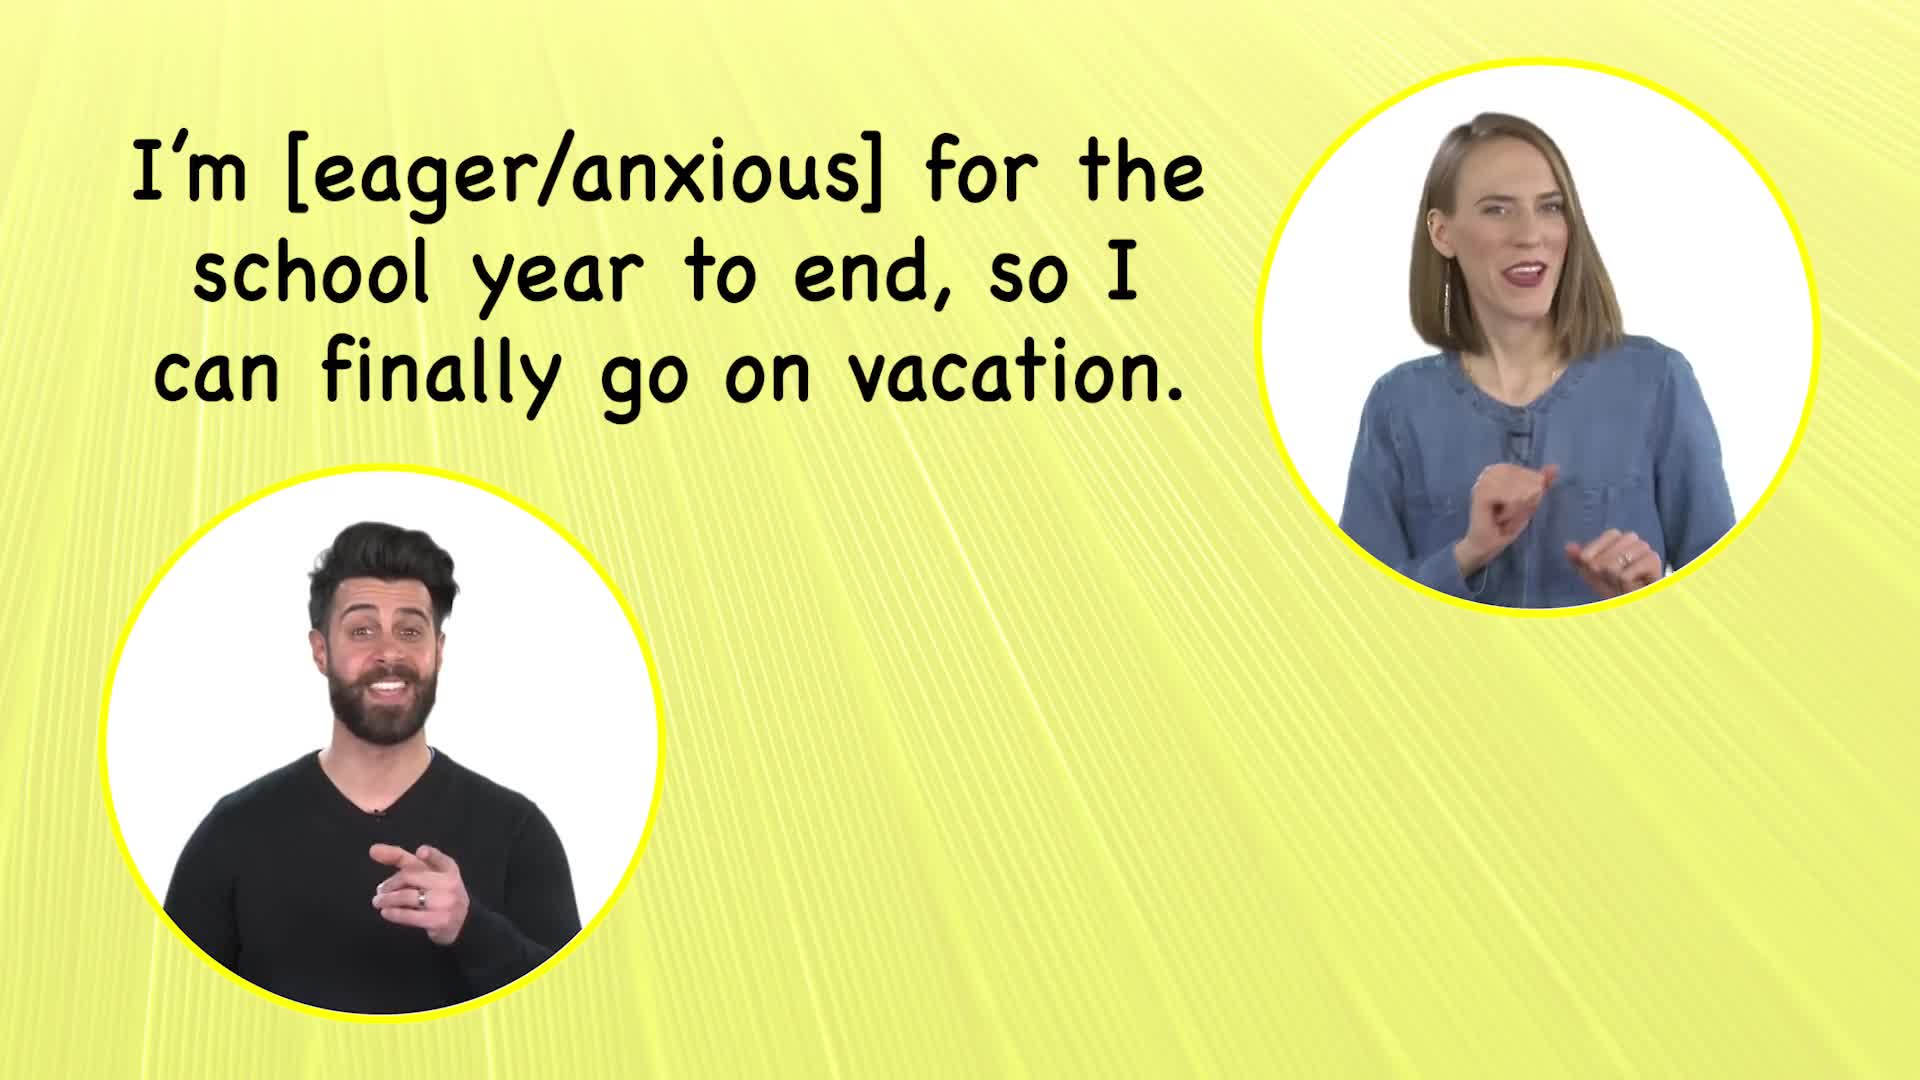 Everyday Grammar: Eager vs. Anxious (Eager와 Anxious의 차이)